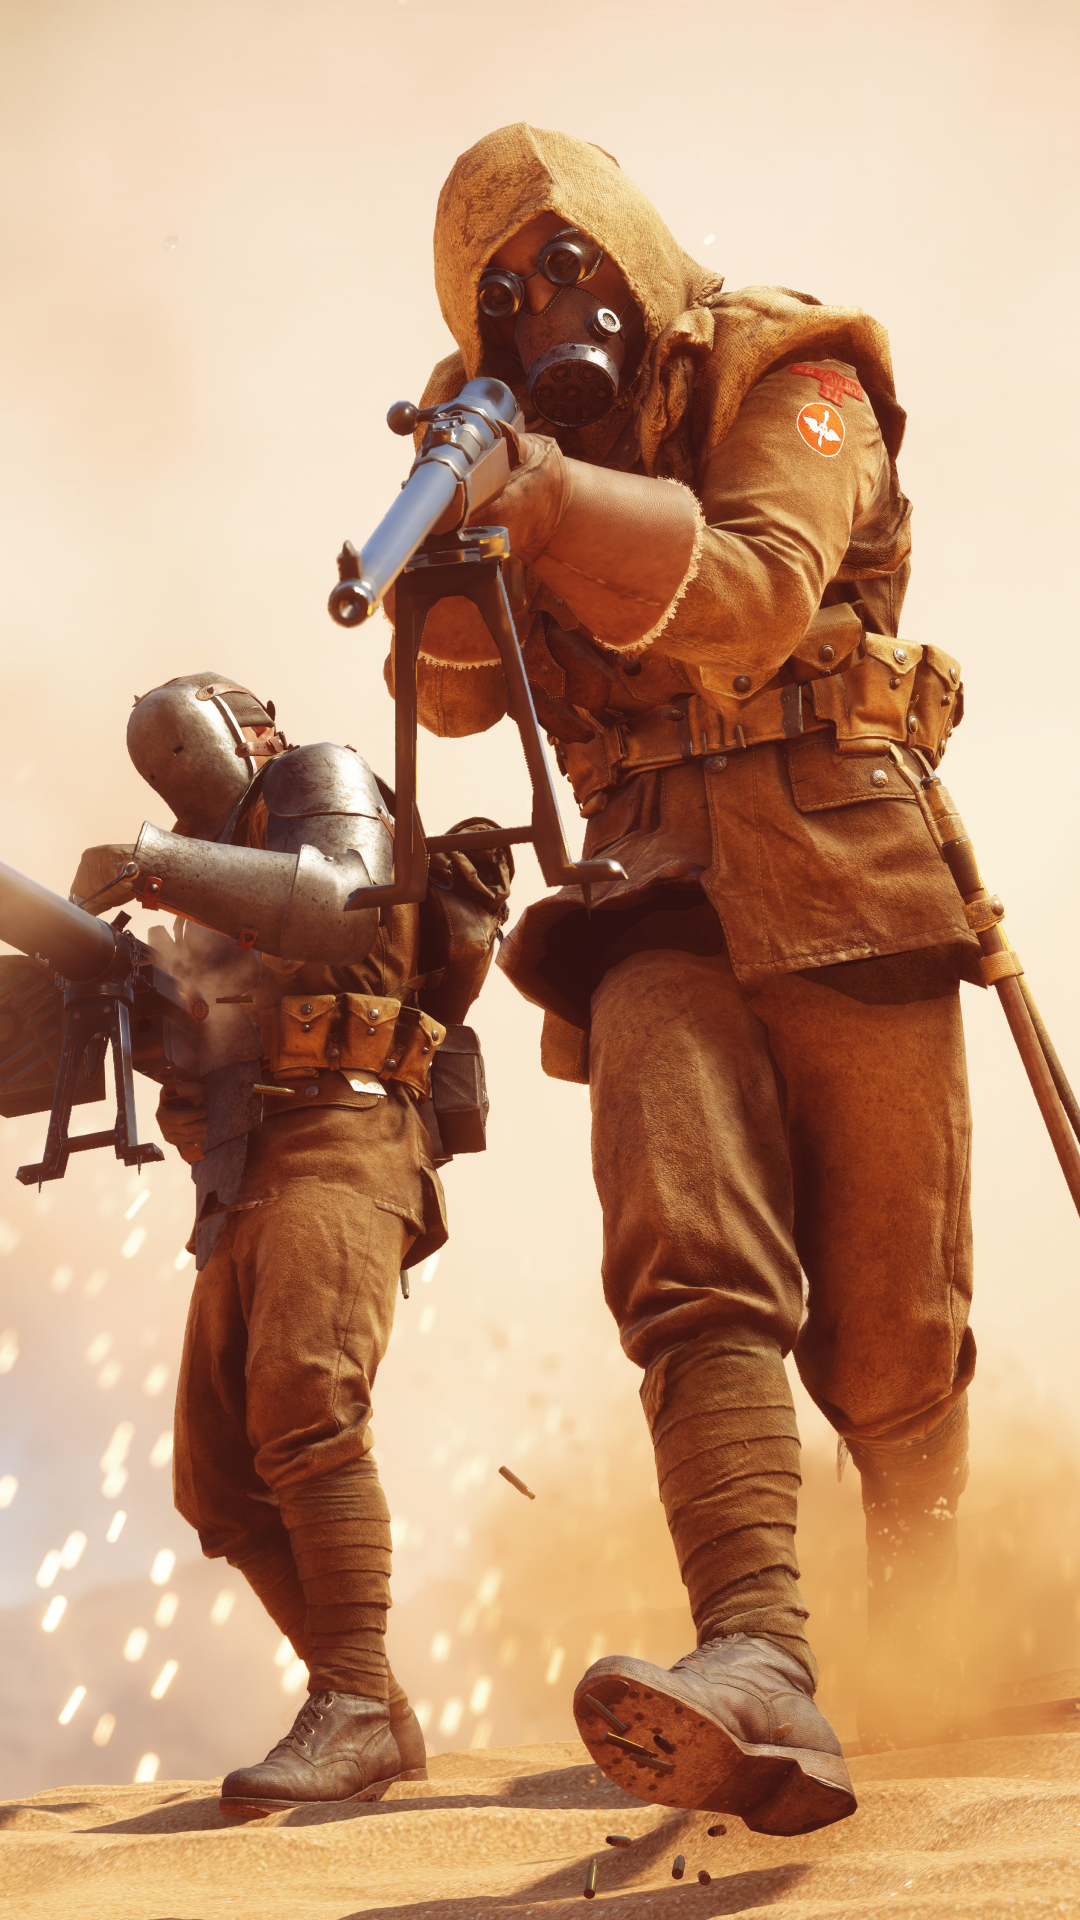 Wallpaper iphone 6 xbox - Download This Wallpaper Iphone 5s Video Game Battlefield 1 1080x1920 For All